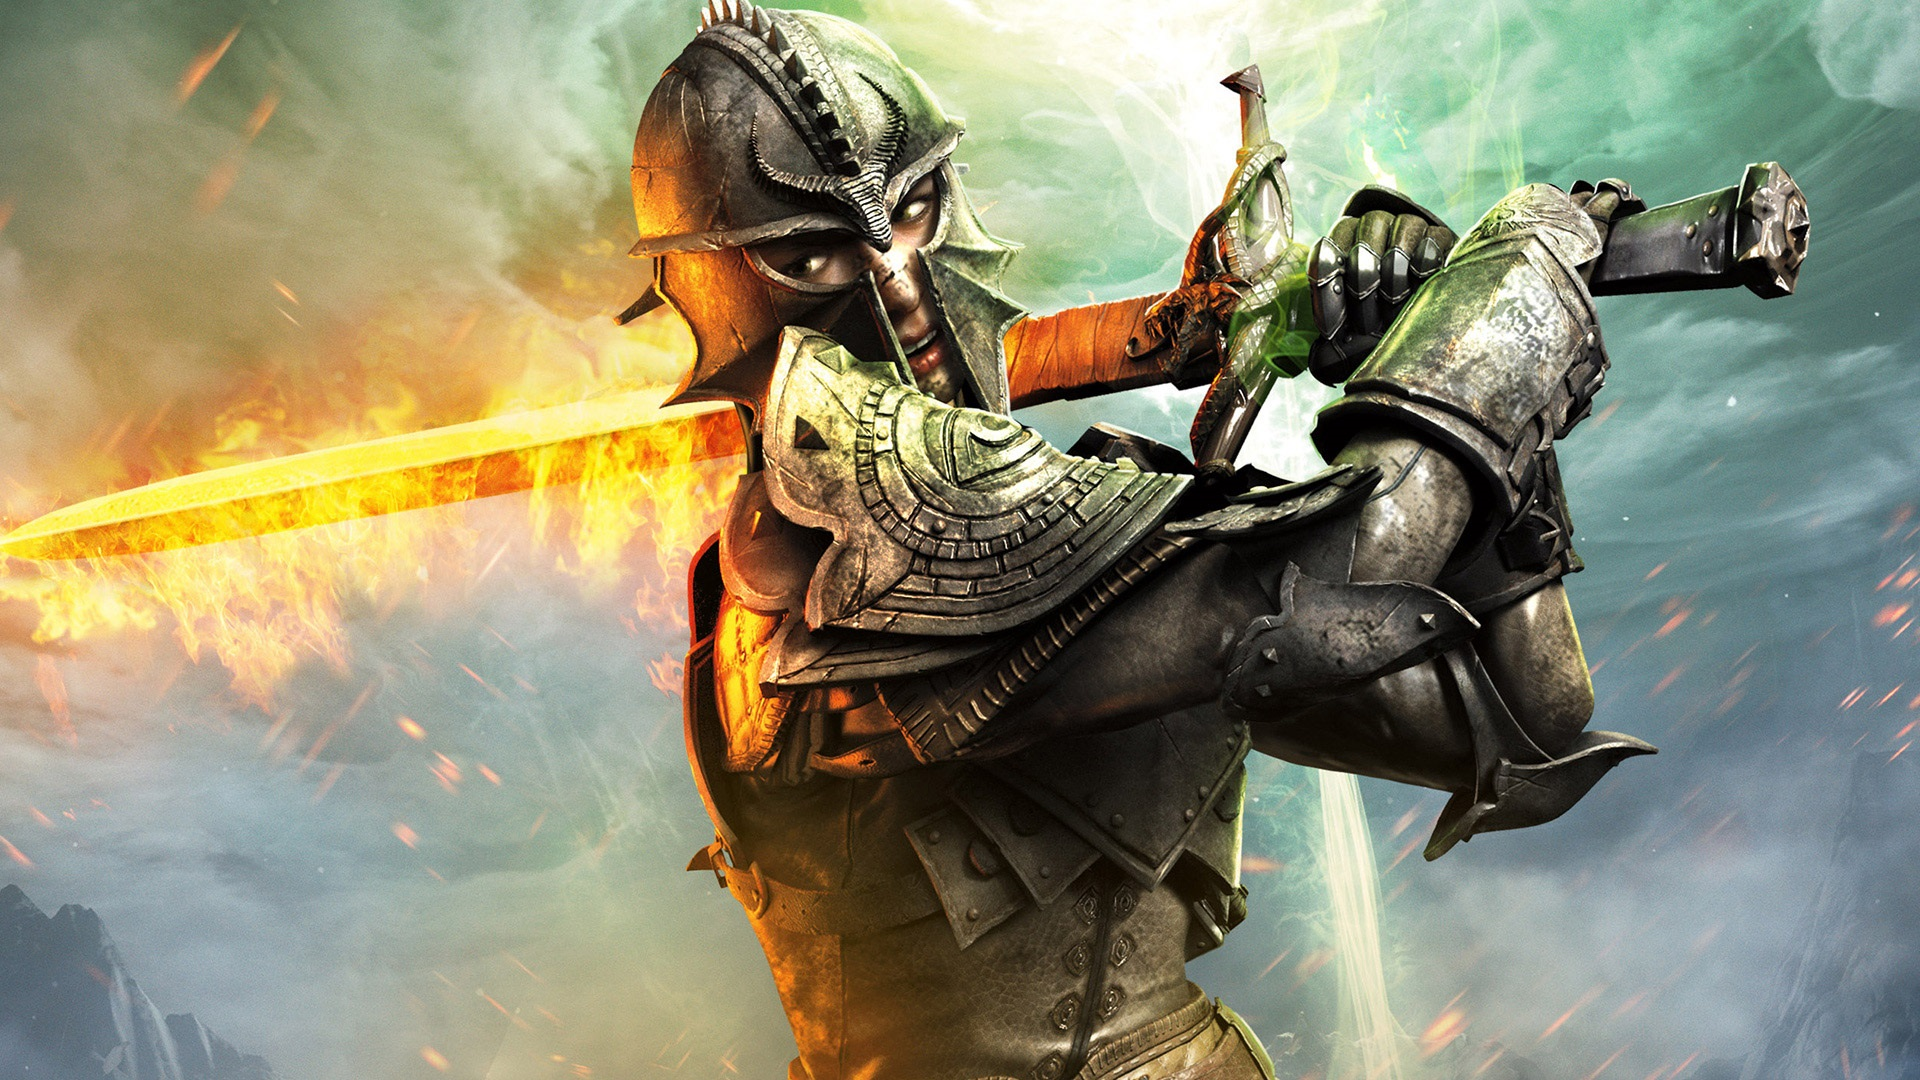 Dragon Age Inquisition Wallpapers - Top Free Dragon Age ...